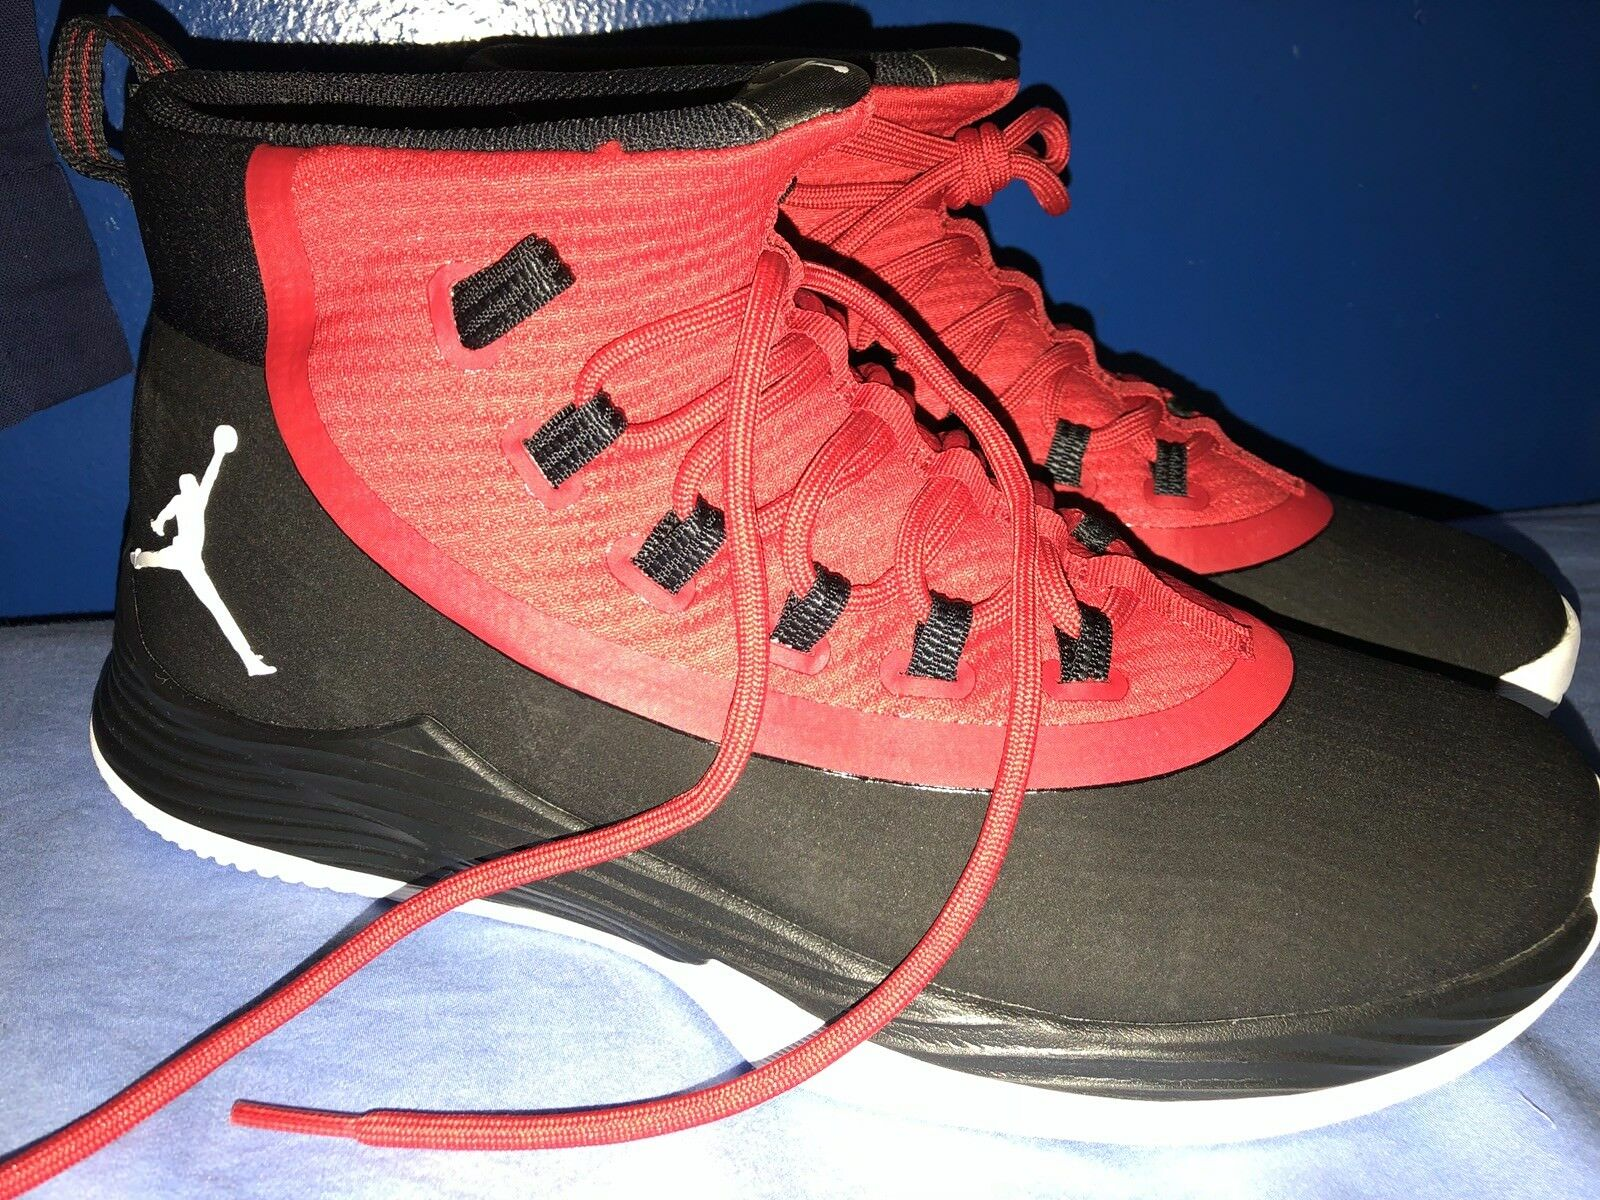 quality design aa393 fabb7 New Hombre authentic nike jordan ultra Fly 2 897998-001 897998-001 897998-